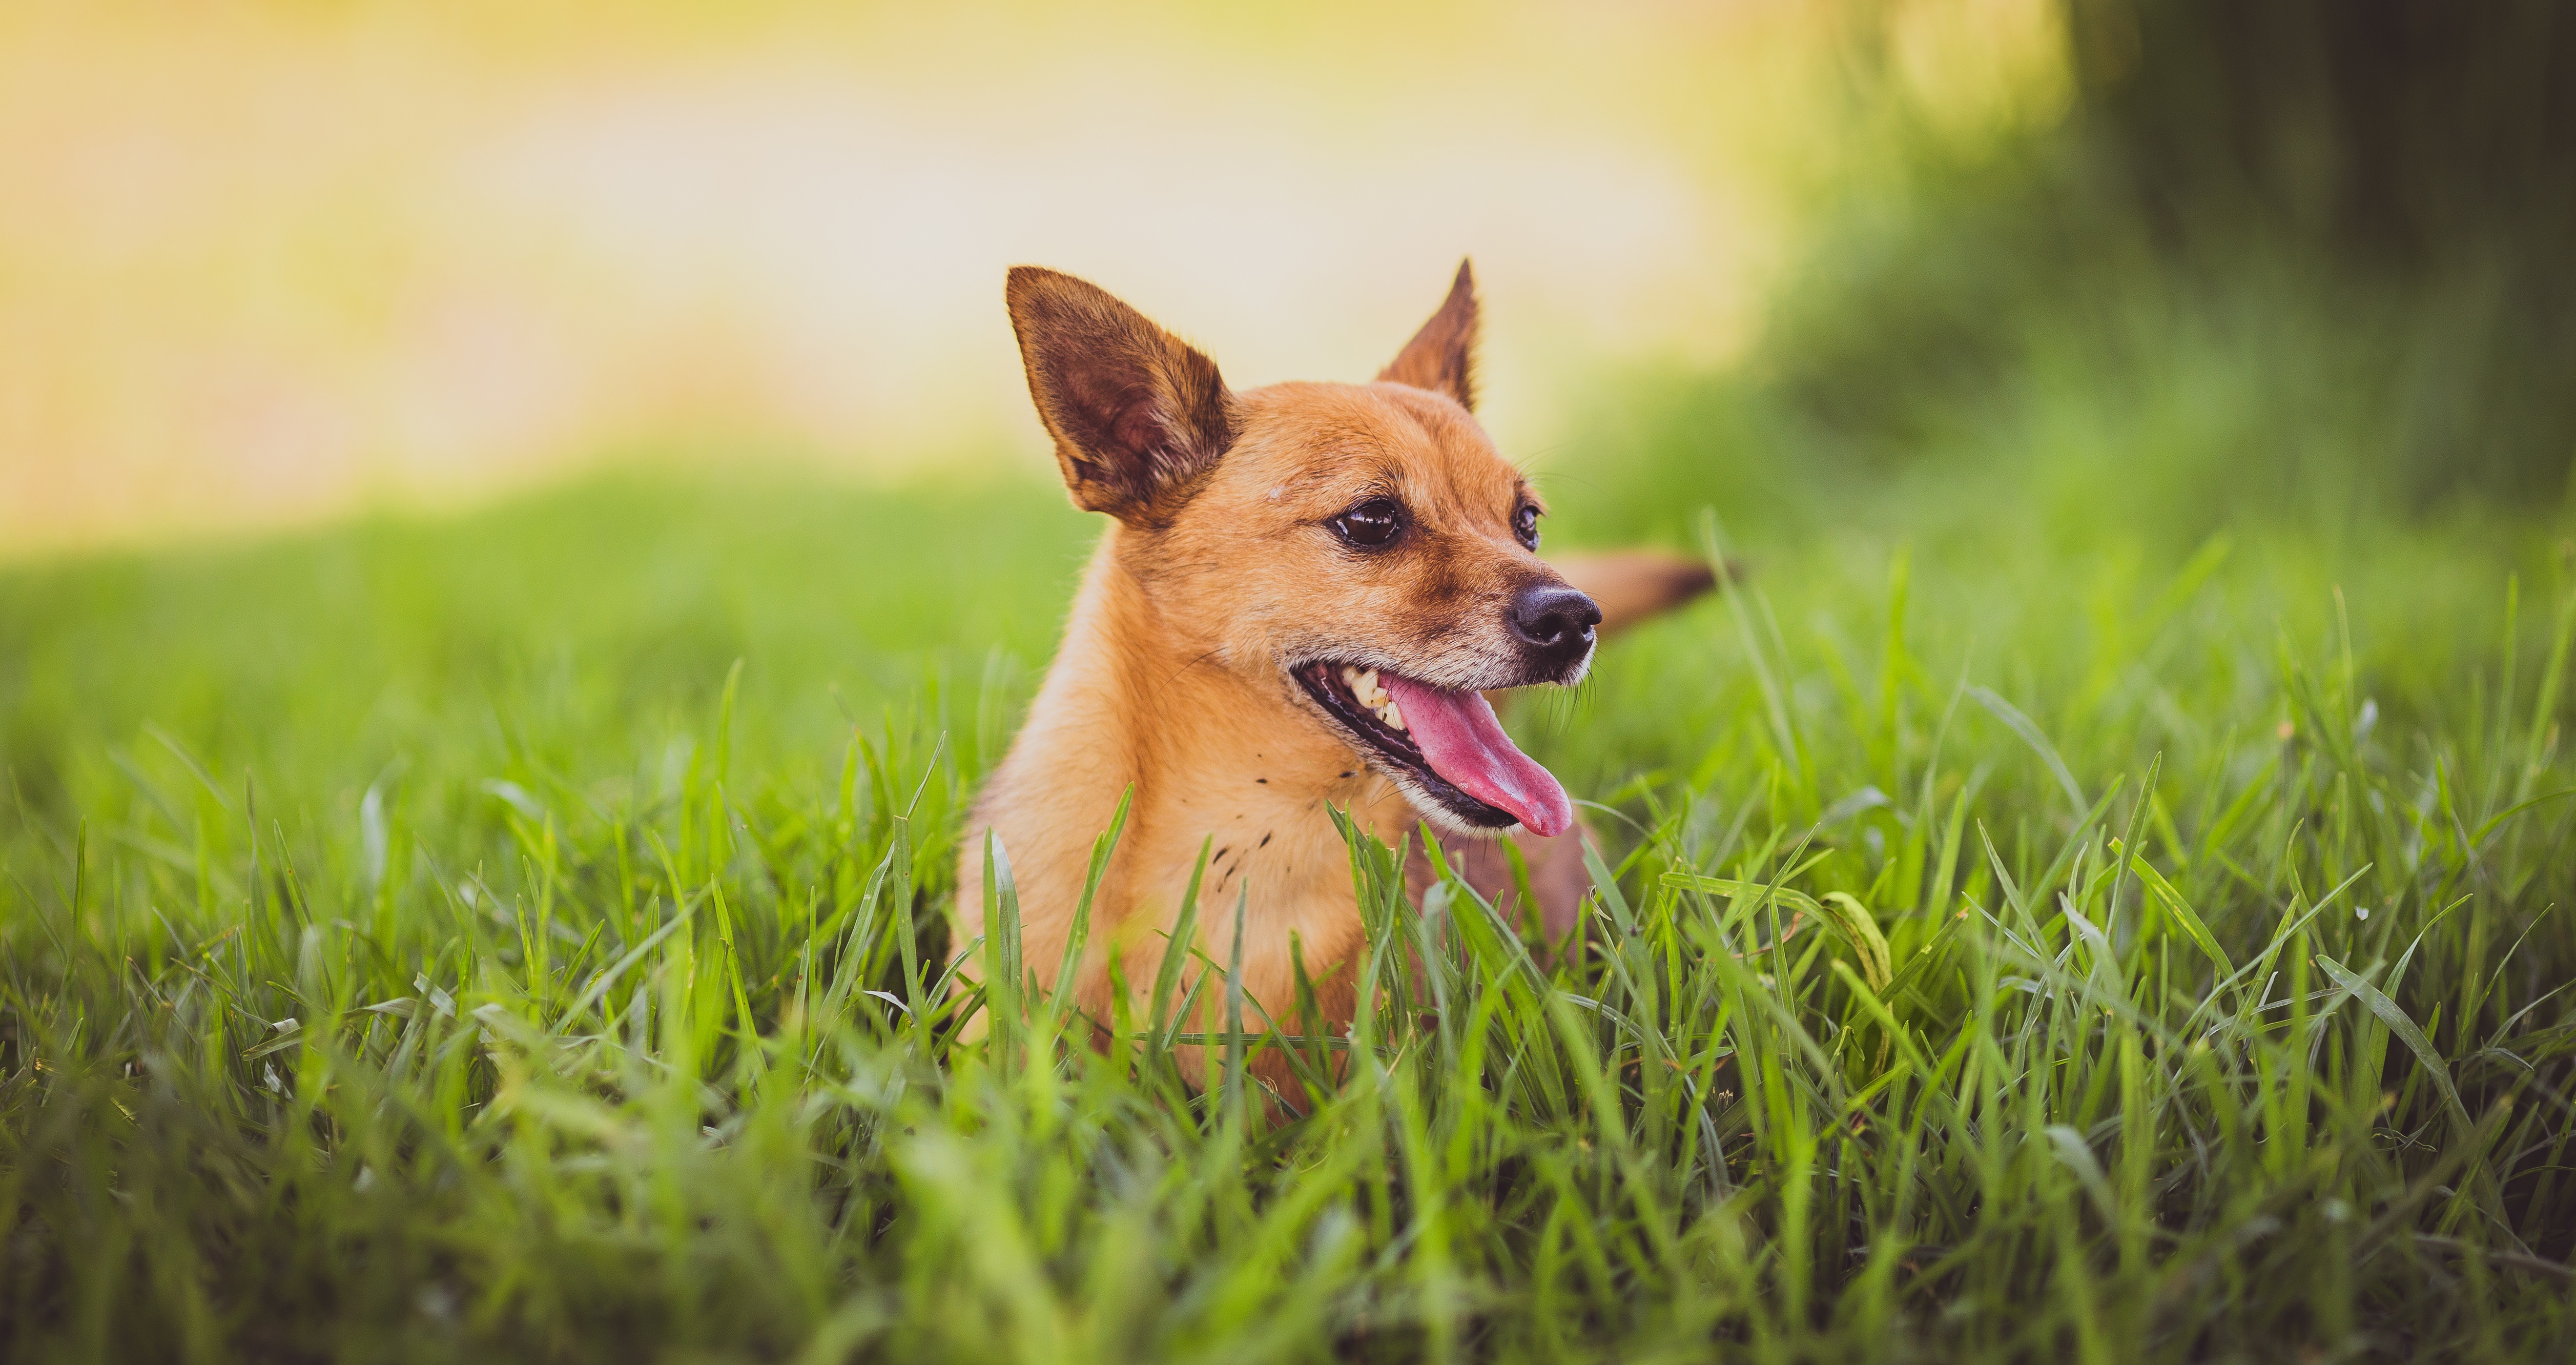 88941 download wallpaper Animals, Dog, Protruding Tongue, Tongue Stuck Out, Grass screensavers and pictures for free